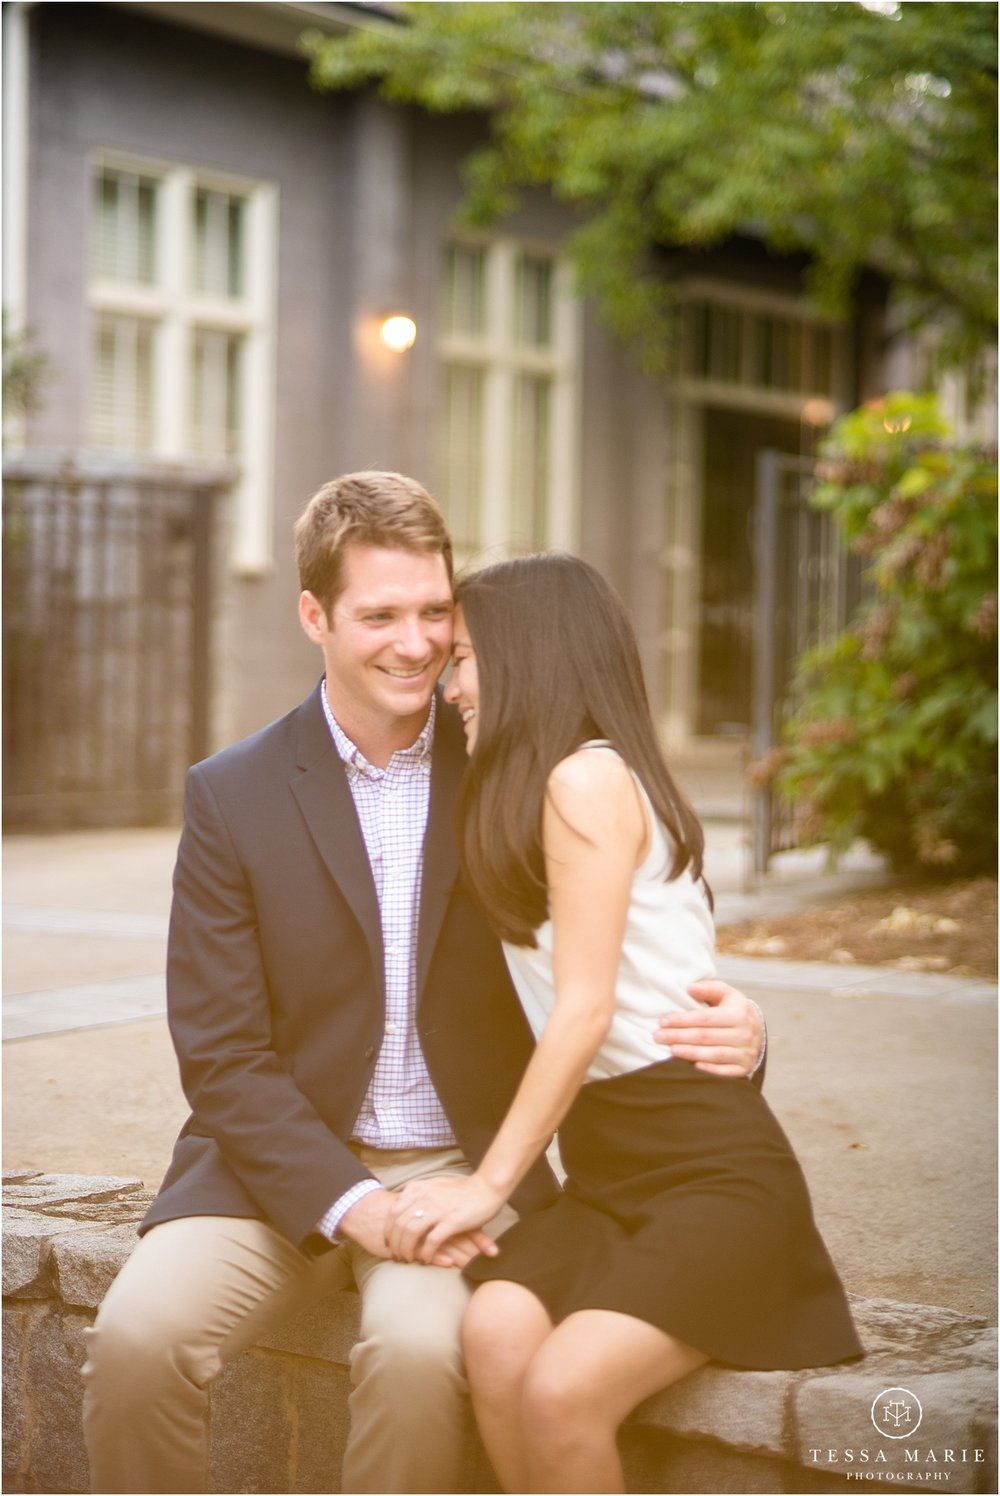 Tessa_marie_photography_wedding_photographer_engagement_pictures_piedmont_park_0057.jpg